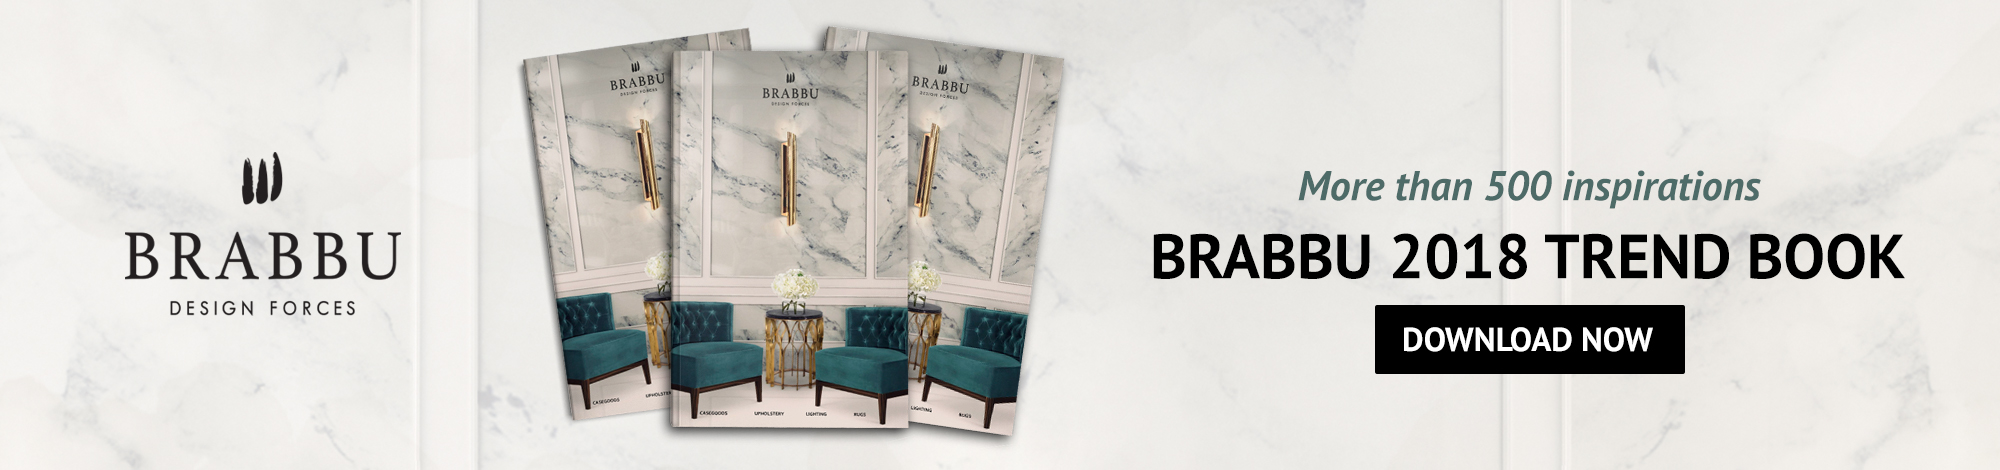 BRABBU Catalogue 10 Best Interior Designers Top 10 Best Interior Designers In The World  1C5EB82328DCFD5BD10428DB124BD945082C079483CACCDD2D pimgpsh fullsize distr